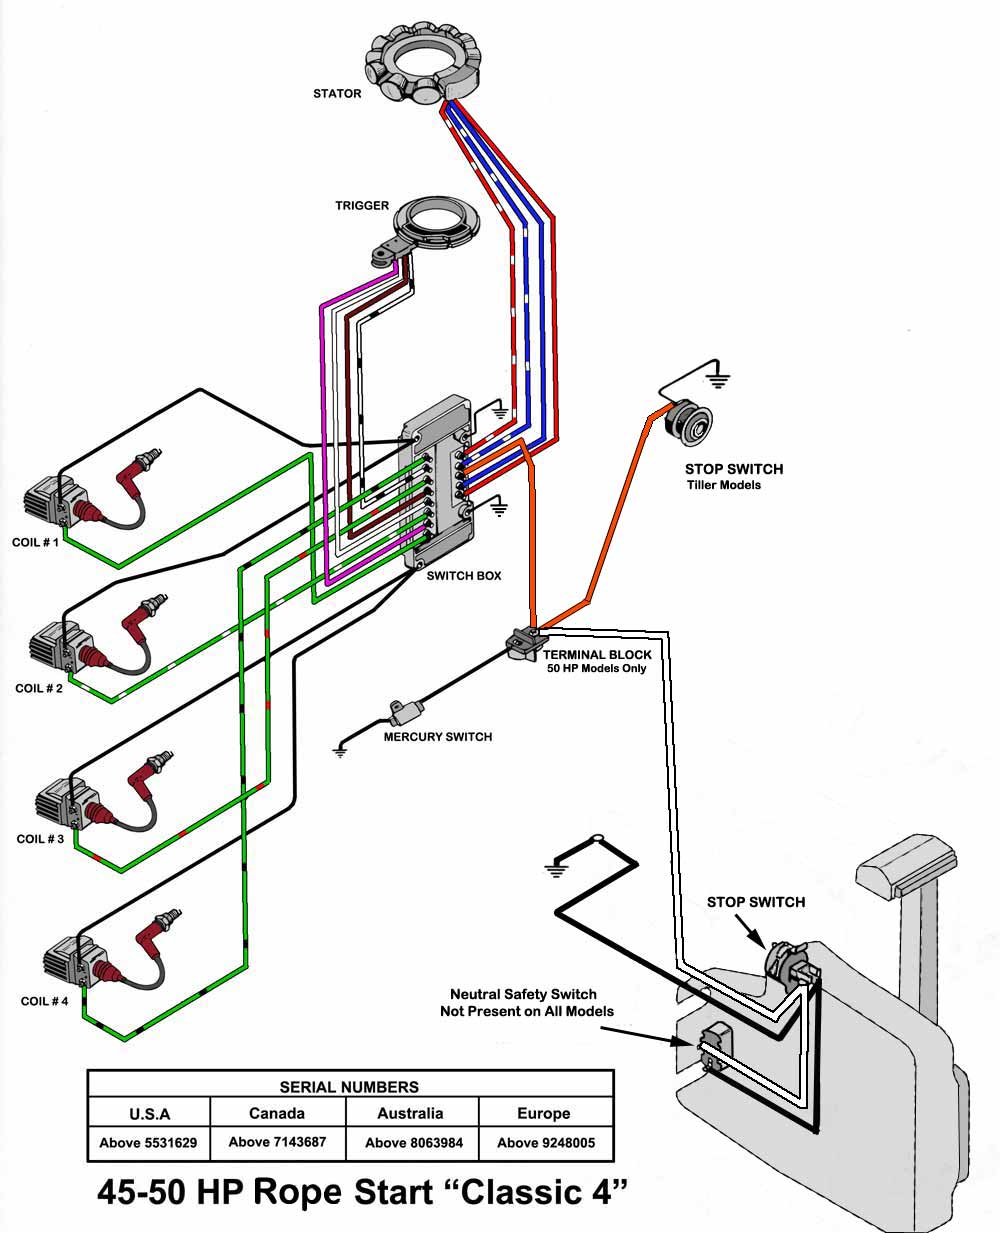 hight resolution of mariner outboard wiring harness diagram wiring diagram blogs 1979 glastron omc ignition switch wiring diagram wiring diagram for mariner outboard